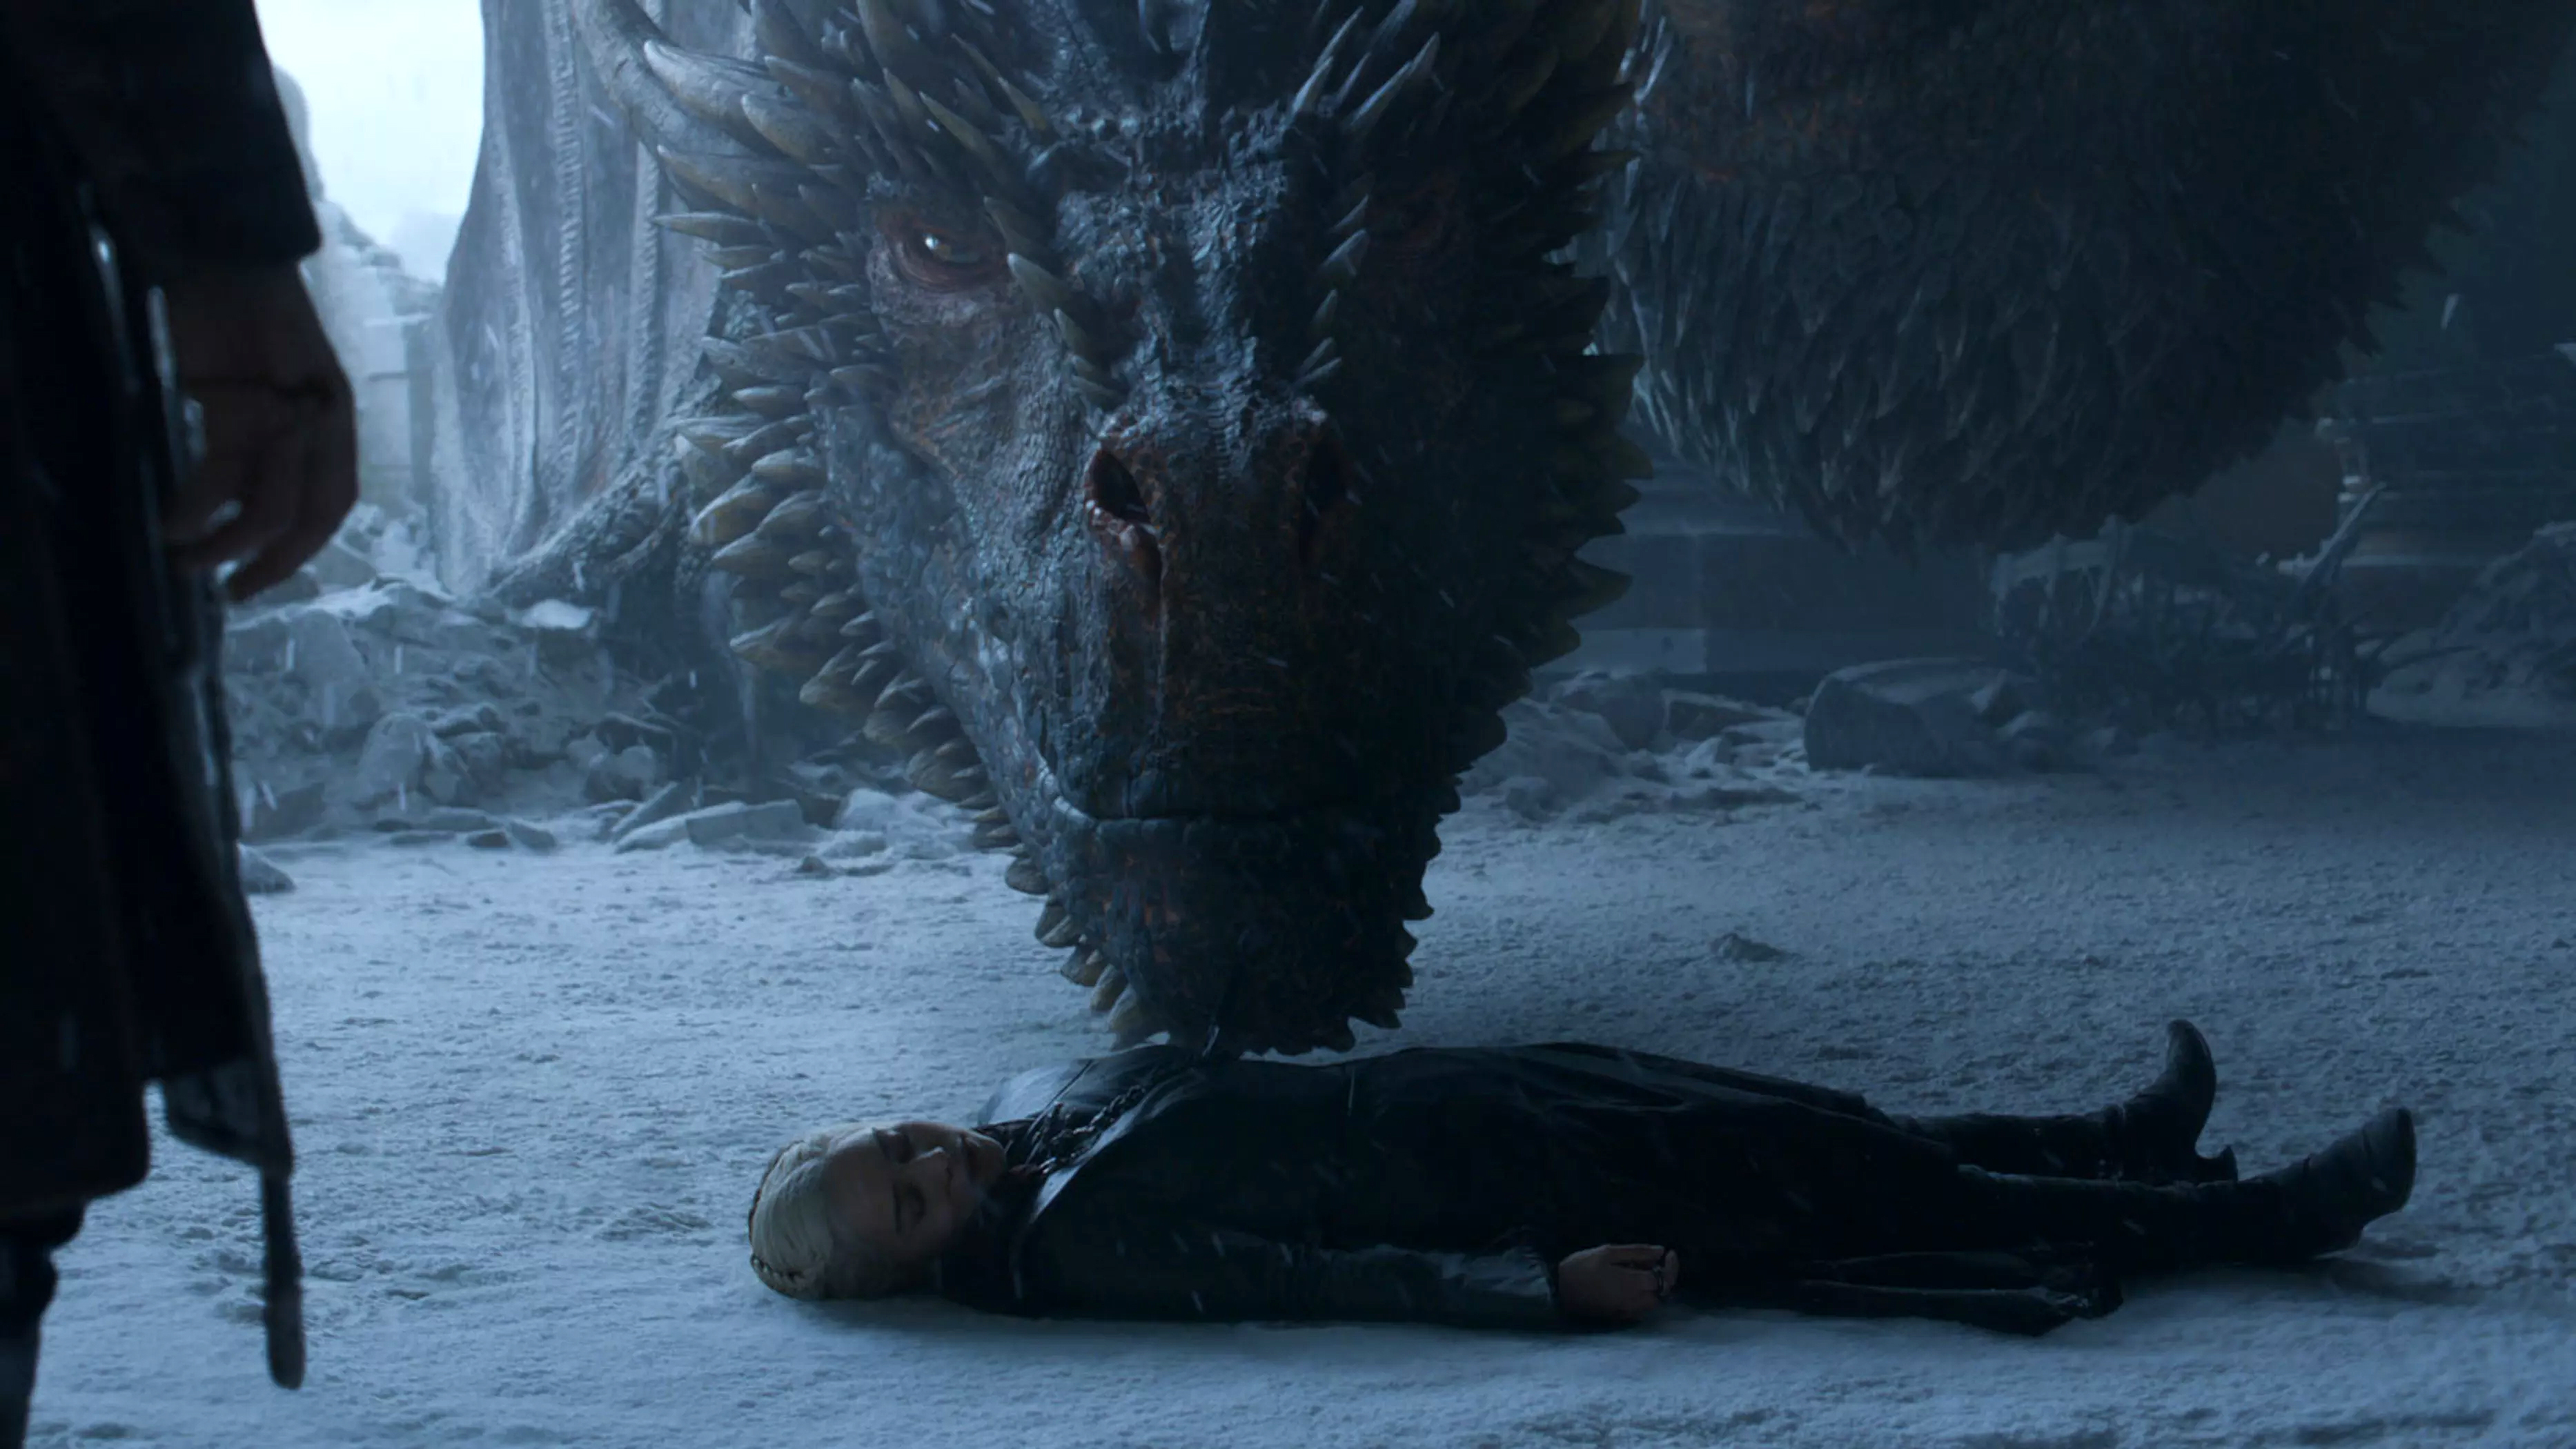 8x06 - The Iron تخت - Daenerys and Drogon